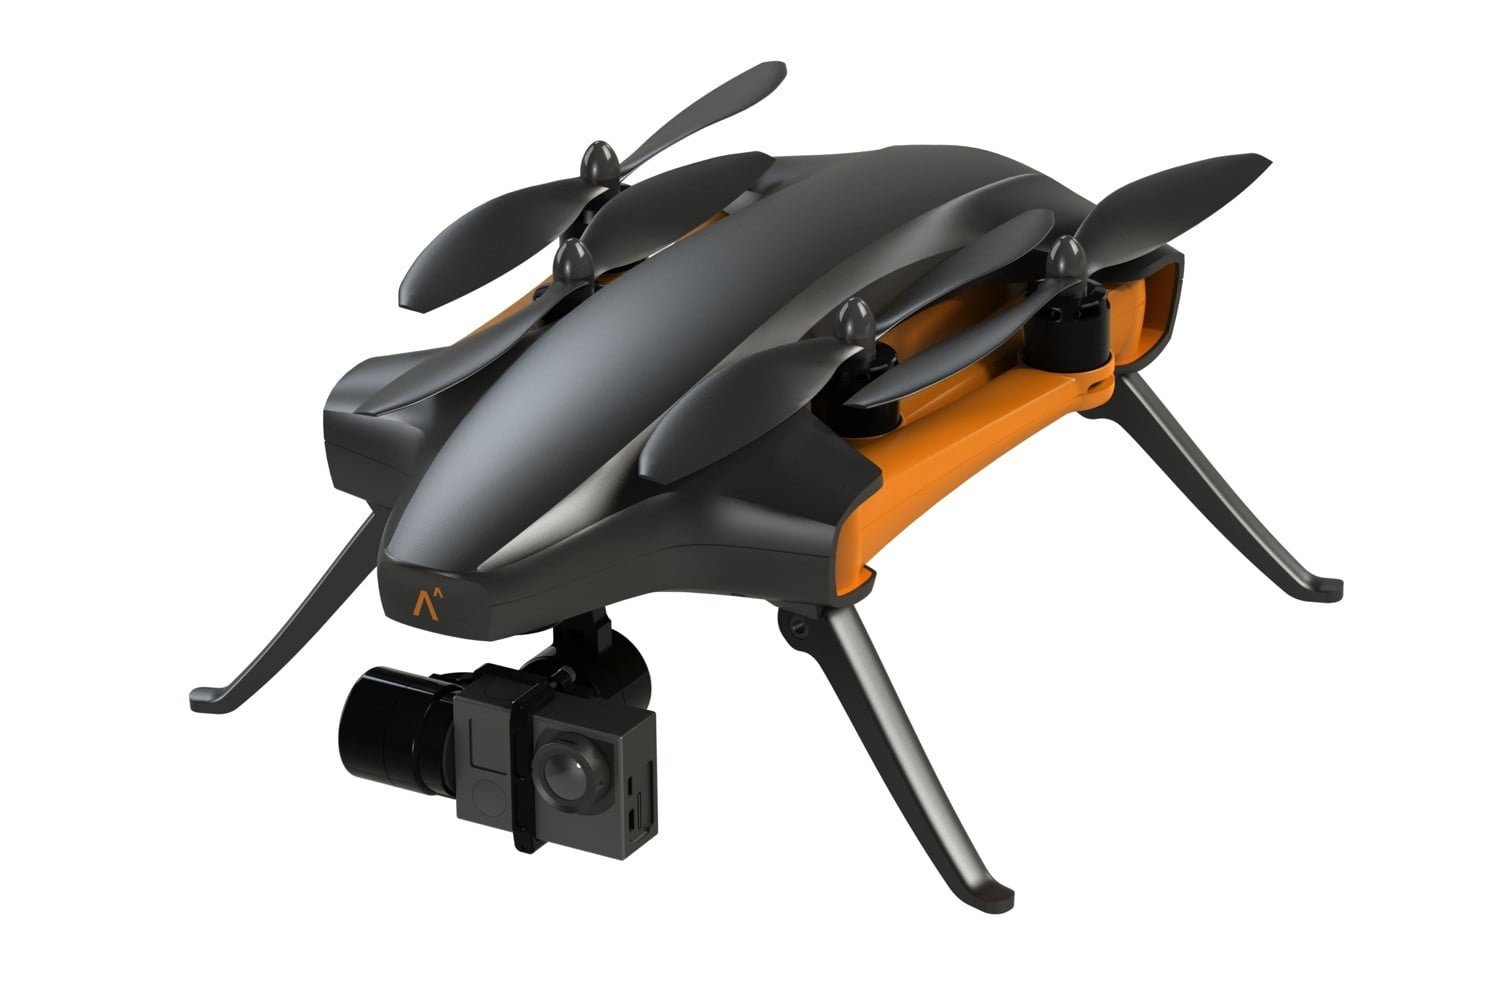 staaker ai drone introduced 2